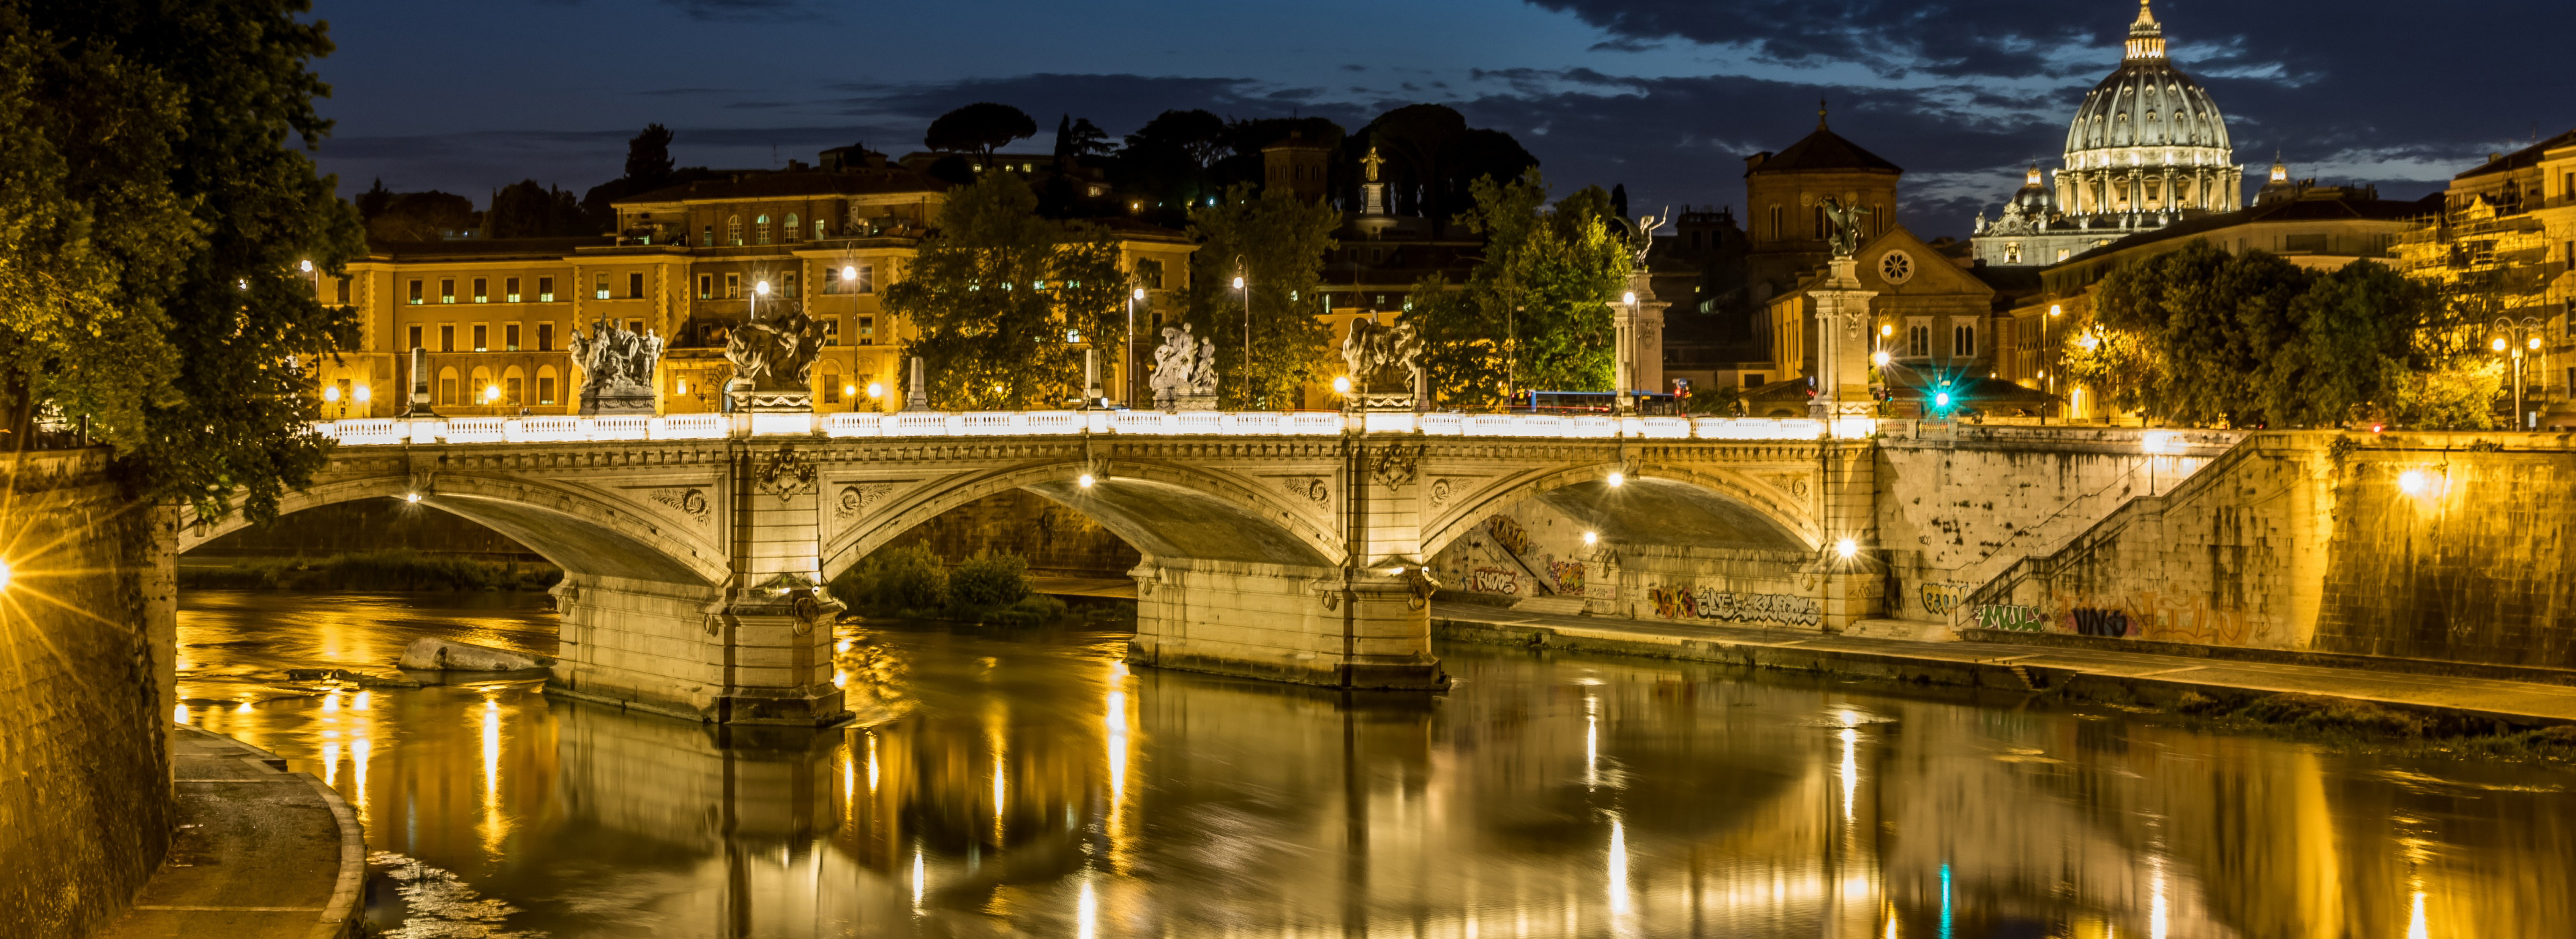 rom_petersdom_tiber_by_night-wallpaper-3840x1600